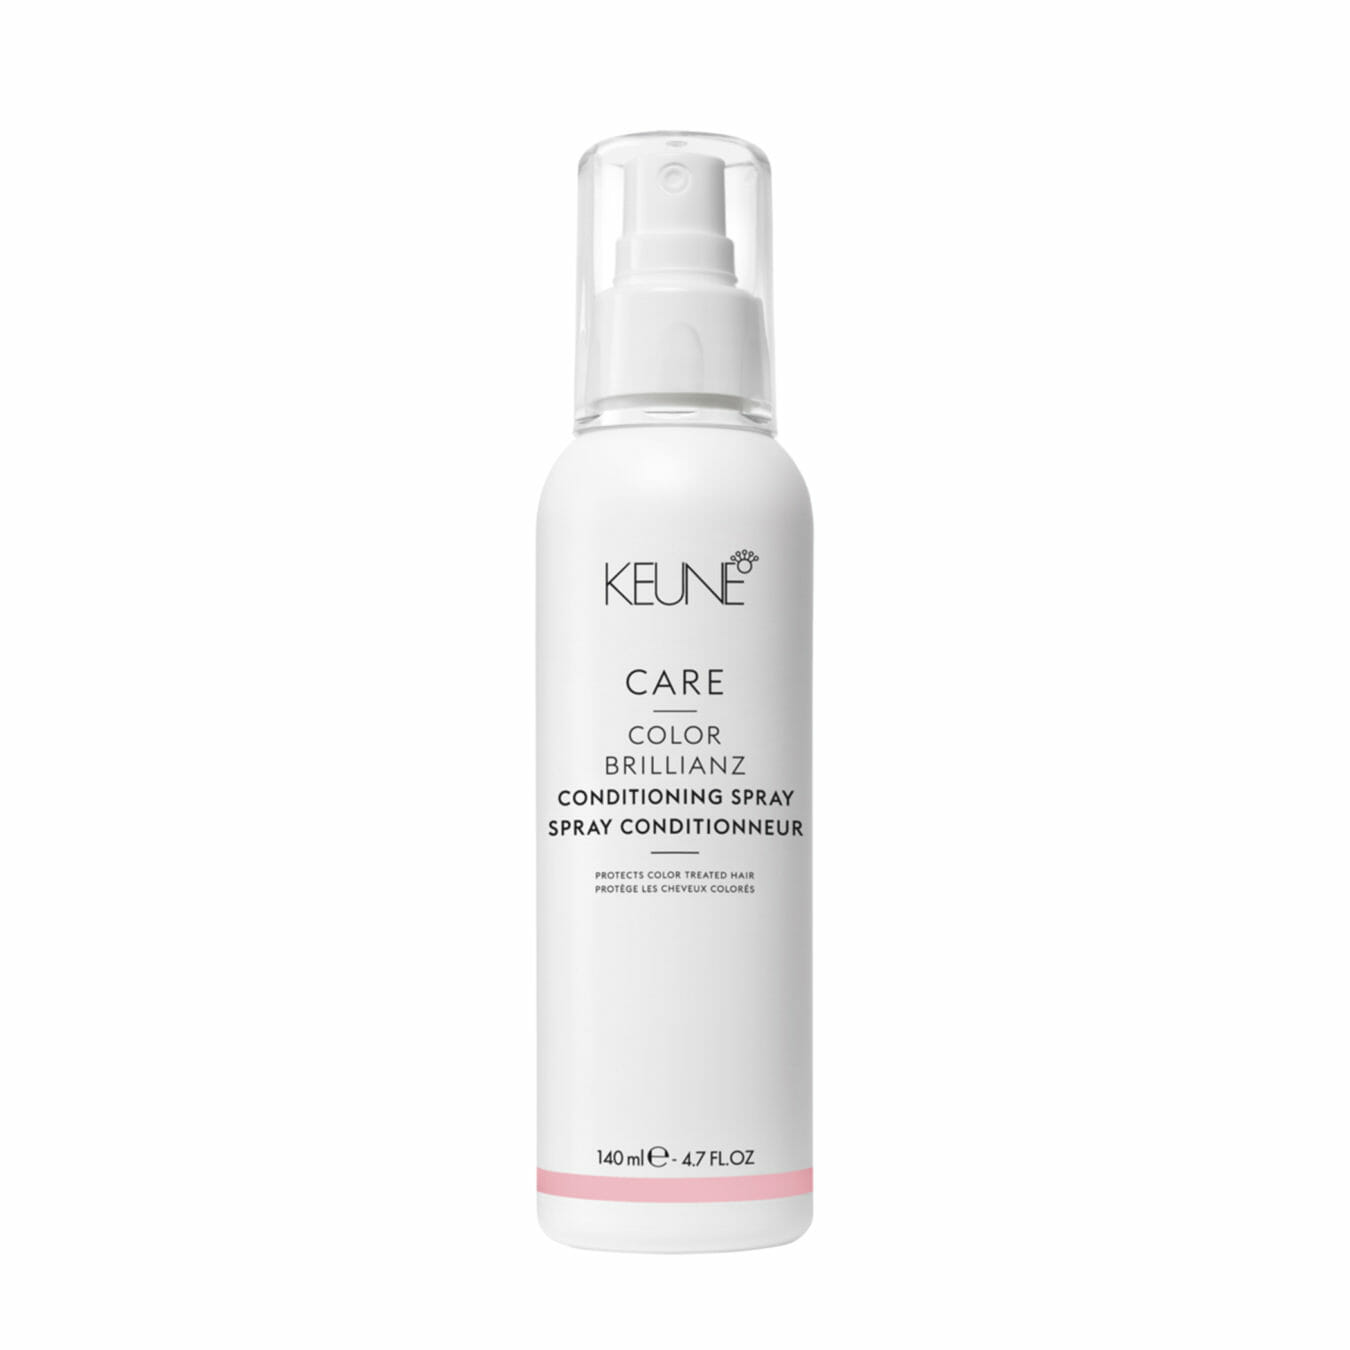 Koop Keune Care Color Brillianz Conditioning Spray 140ml